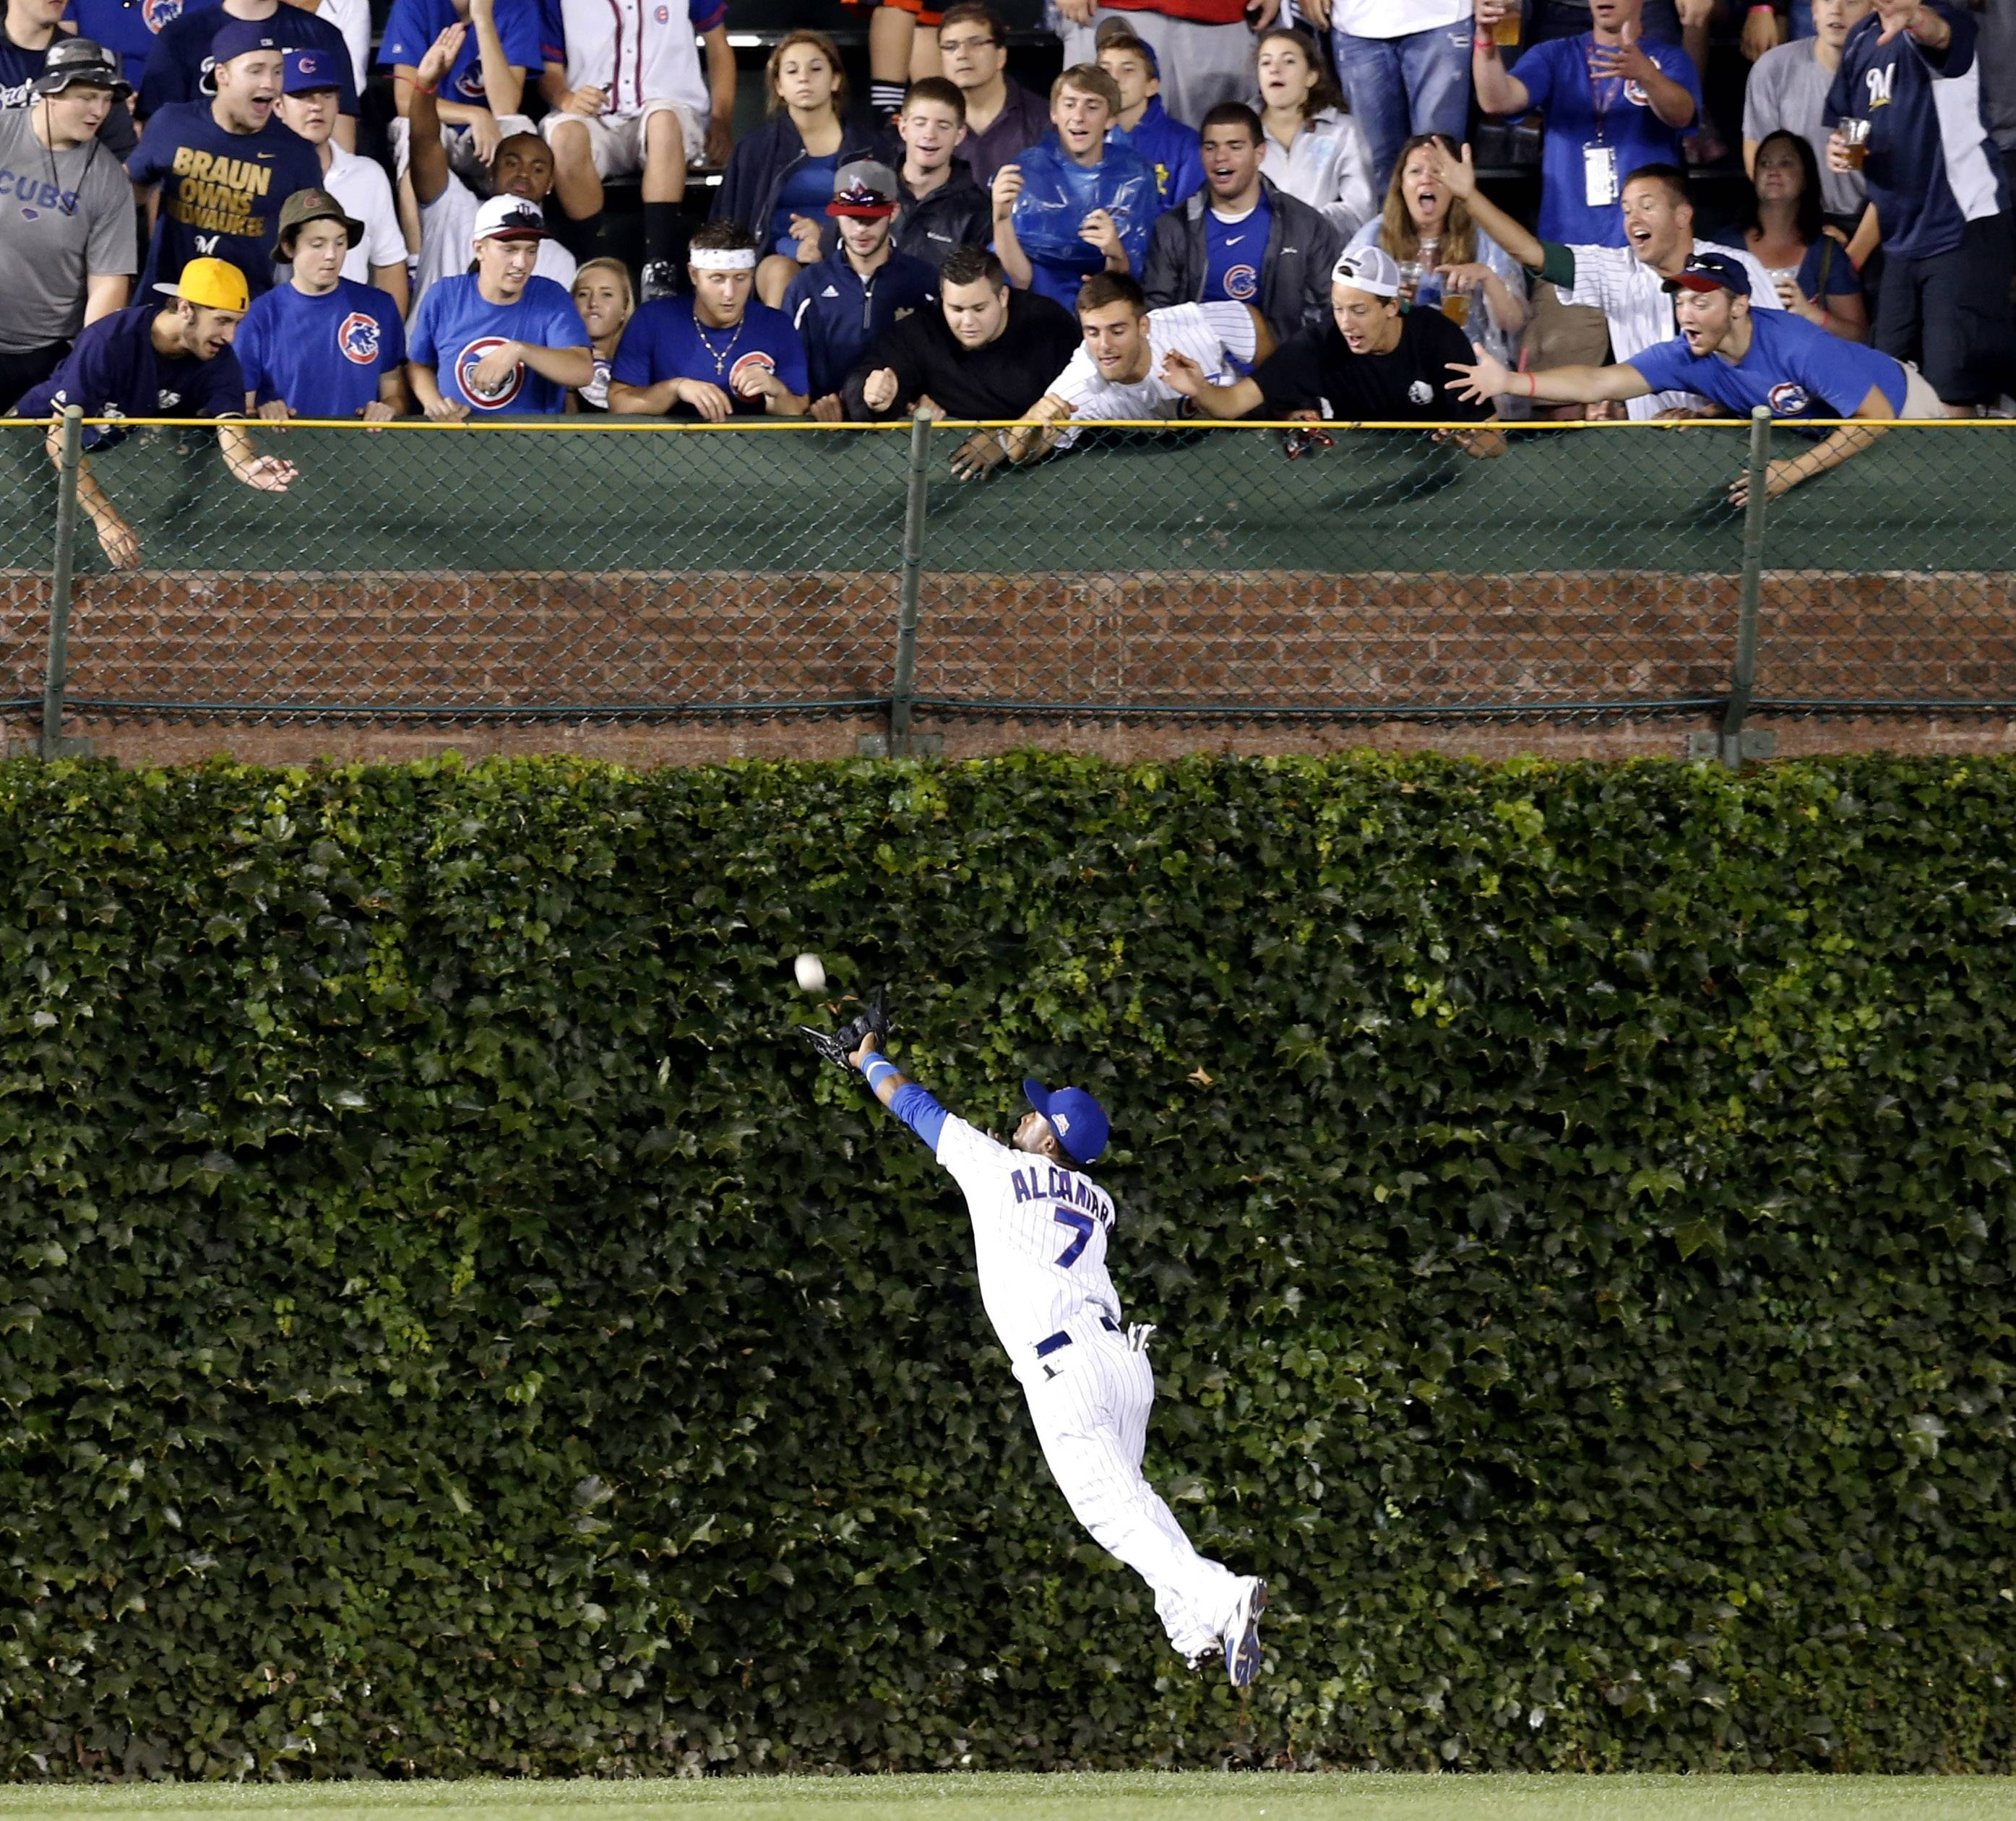 Chicago Cubs center fielder Arismendy Alcantara is unable to catch a fly ball by Milwaukee Brewers' Scooter Gennett, during the seventh inning of a baseball game Monday in Chicago. Alcantara recovered relaying to Starlin Castro who threw out Ryan Braun at home.